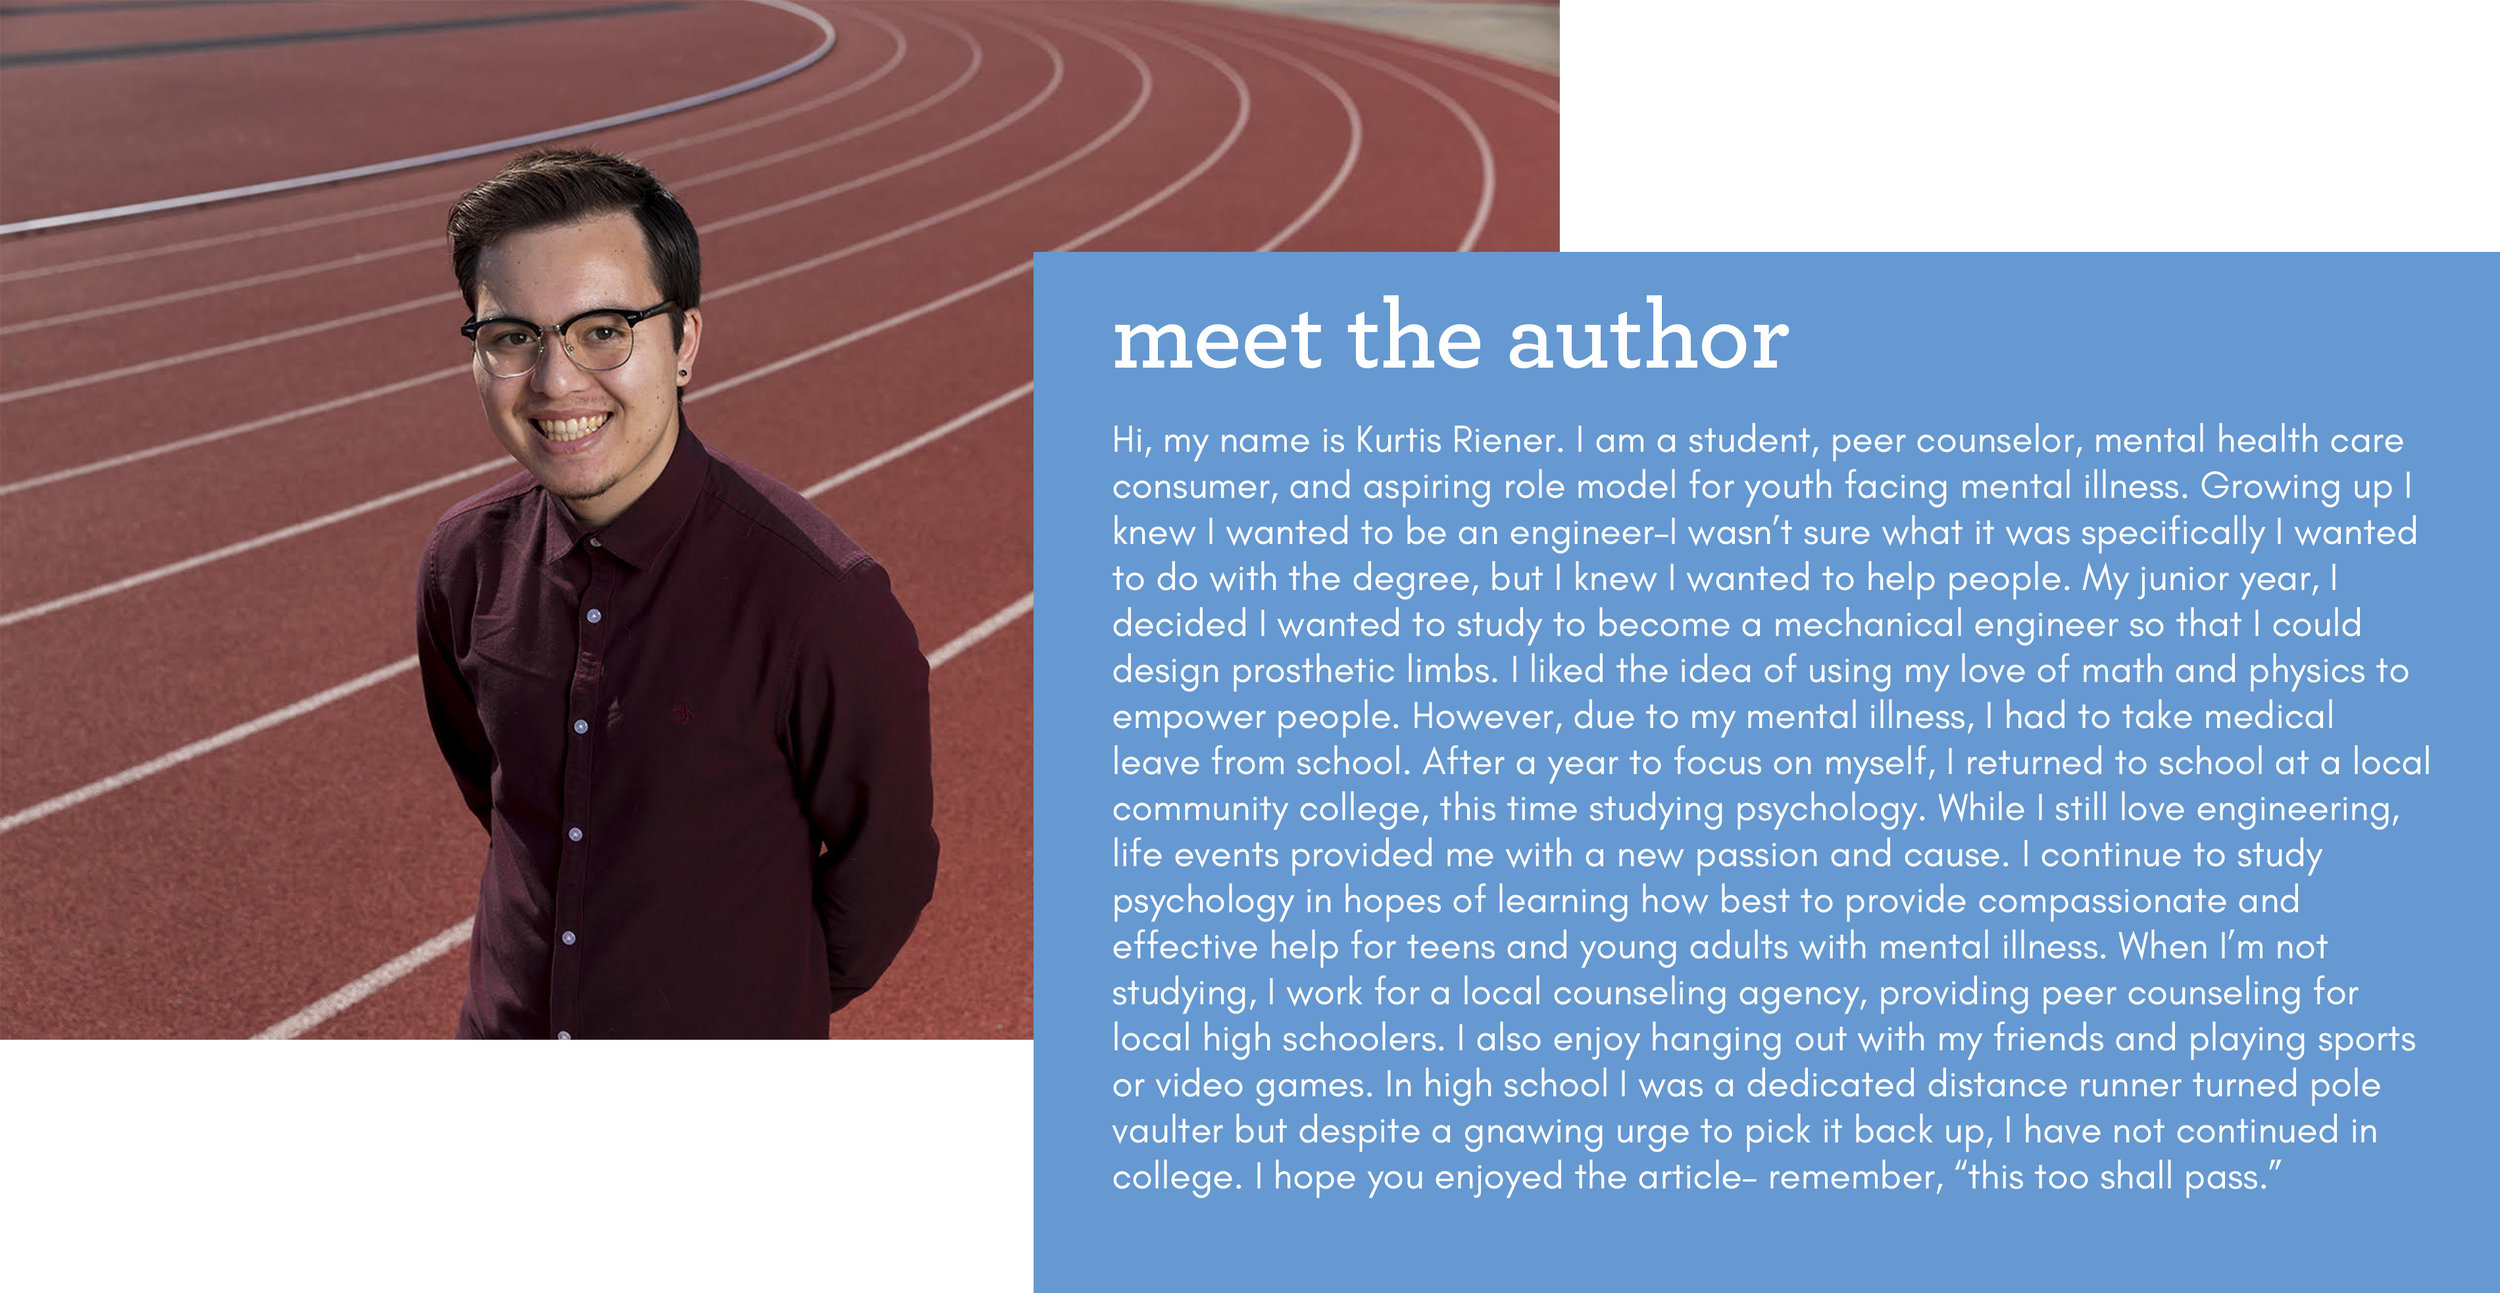 kurtis meet the author.jpg